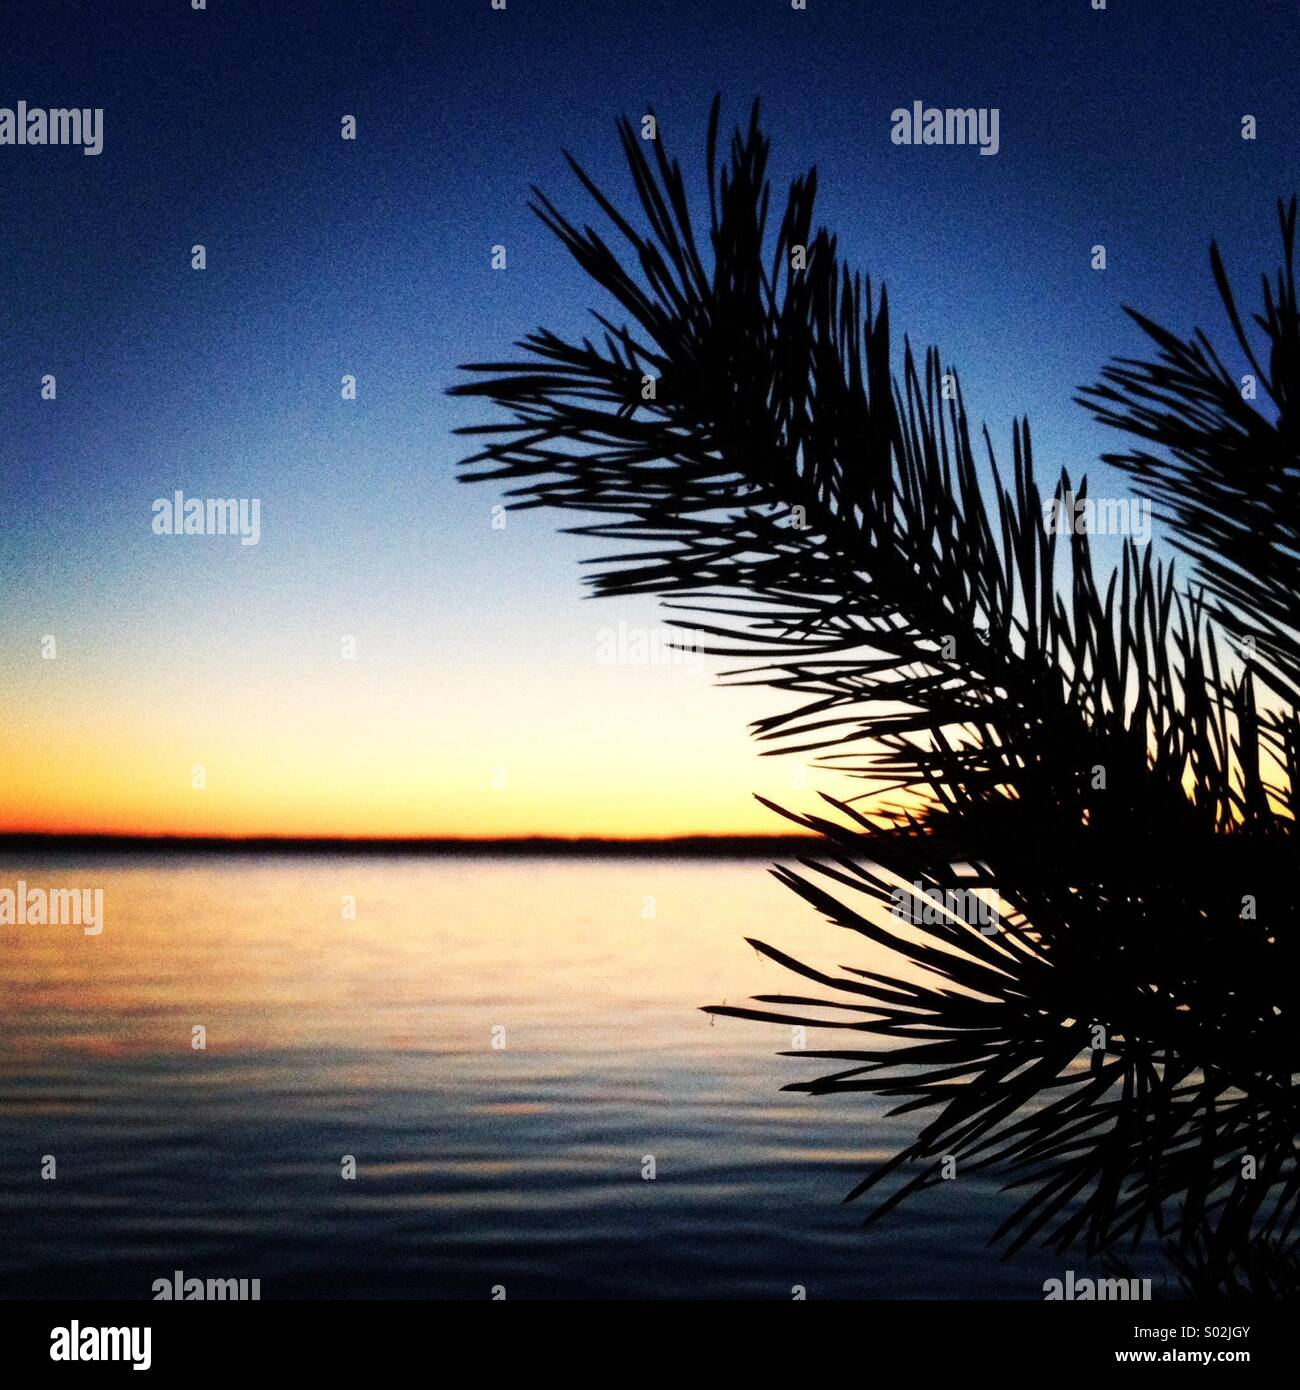 Evening over water - Stock Image